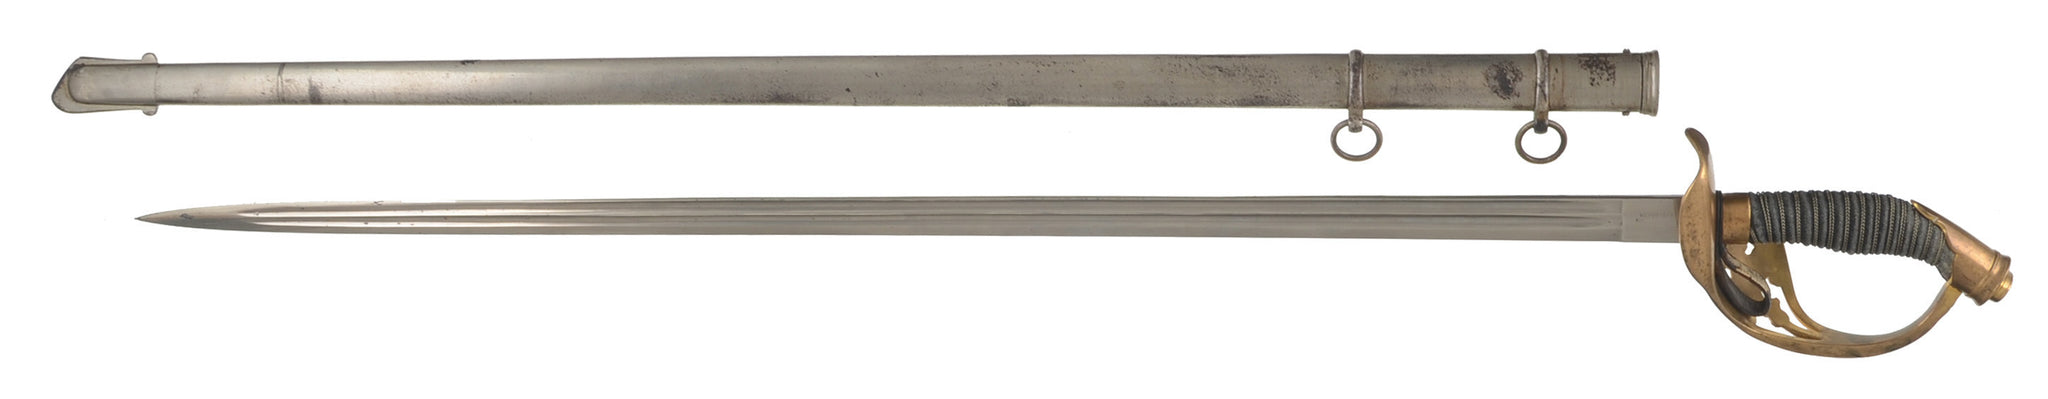 PRUSSIAN M-89 OFFICERS SWORD